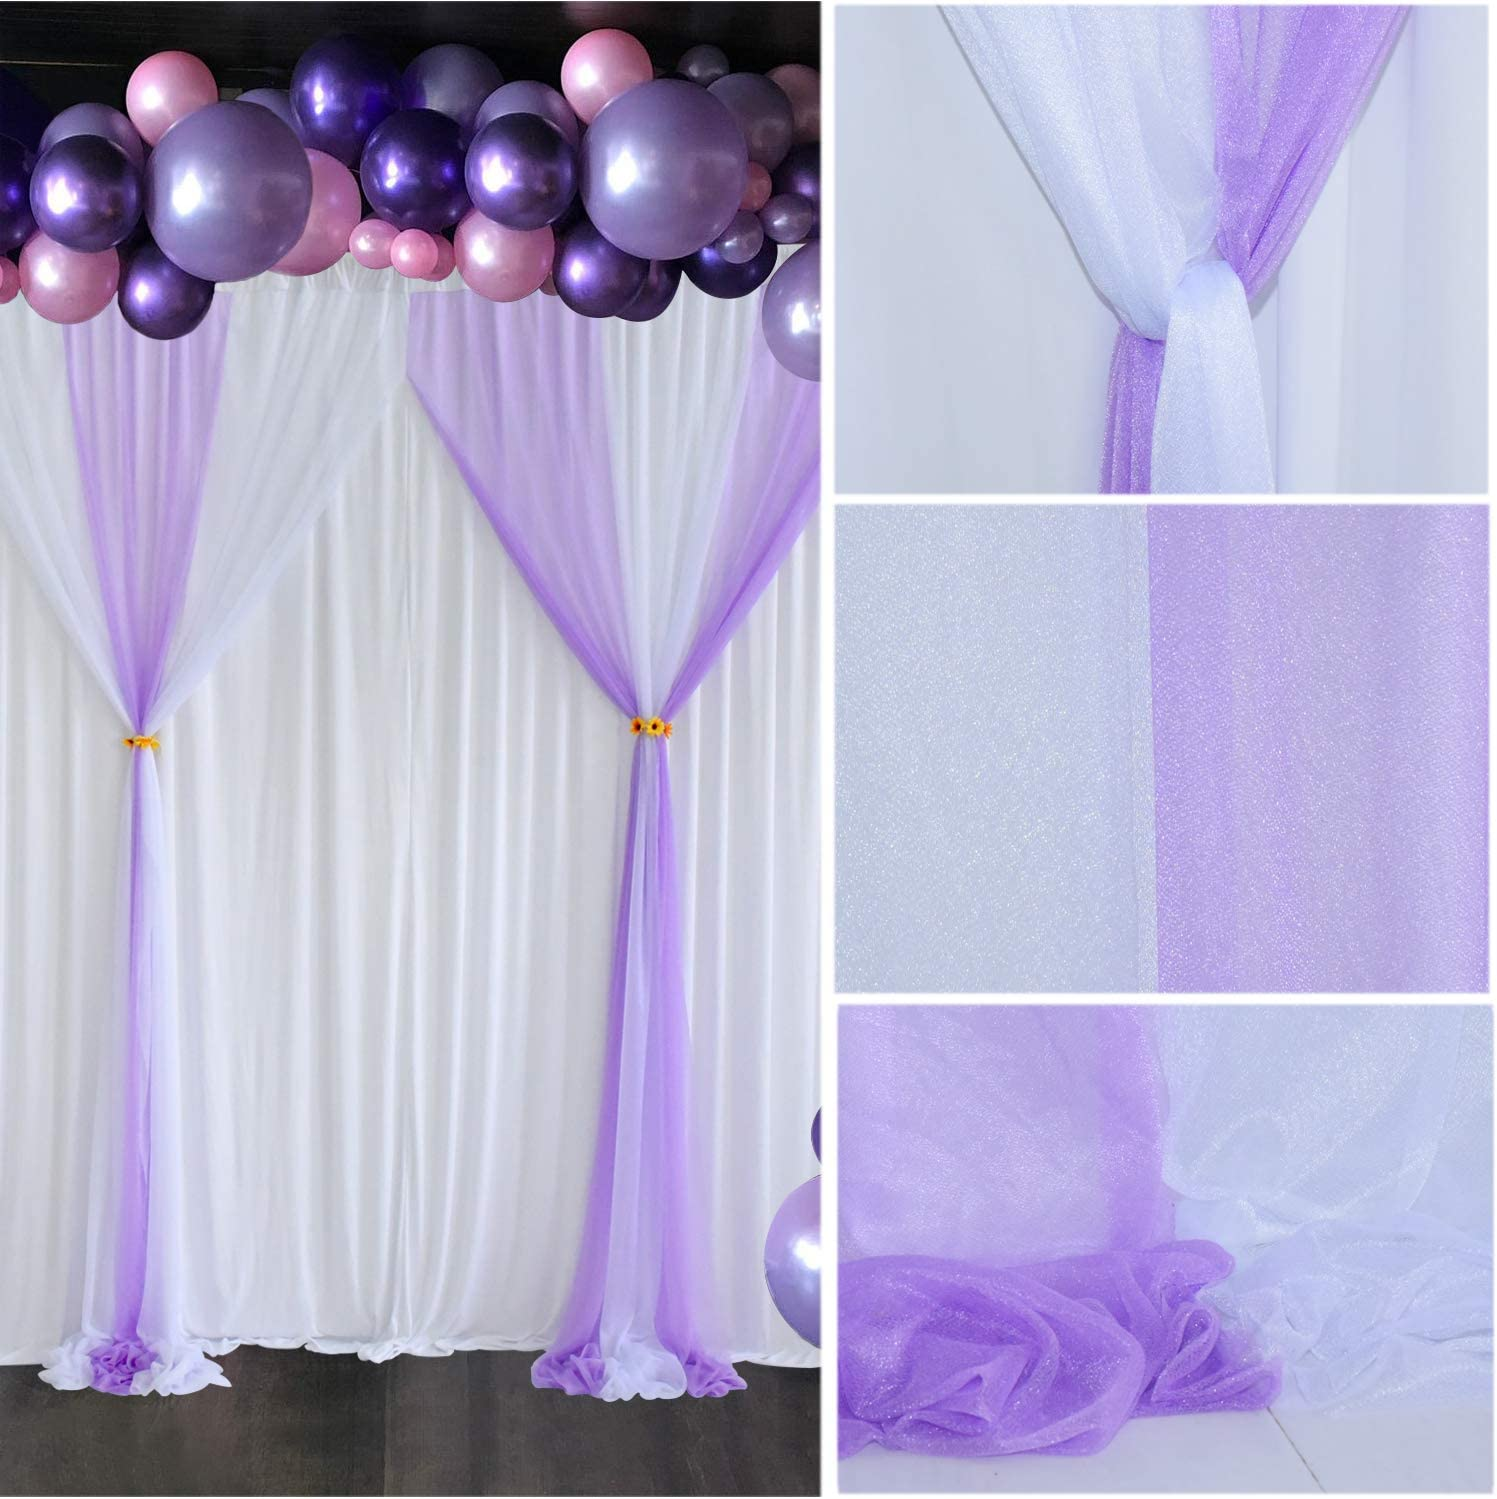 White Pink Tulle Backdrop Curtain for Parties Wedding Baby Shower Birthday Party Bridal Shower Gender Reveal Photobooth White Chiffon Backdrop Panel Sheer Drape Backdrop Curtains 10 ft X 7 ft